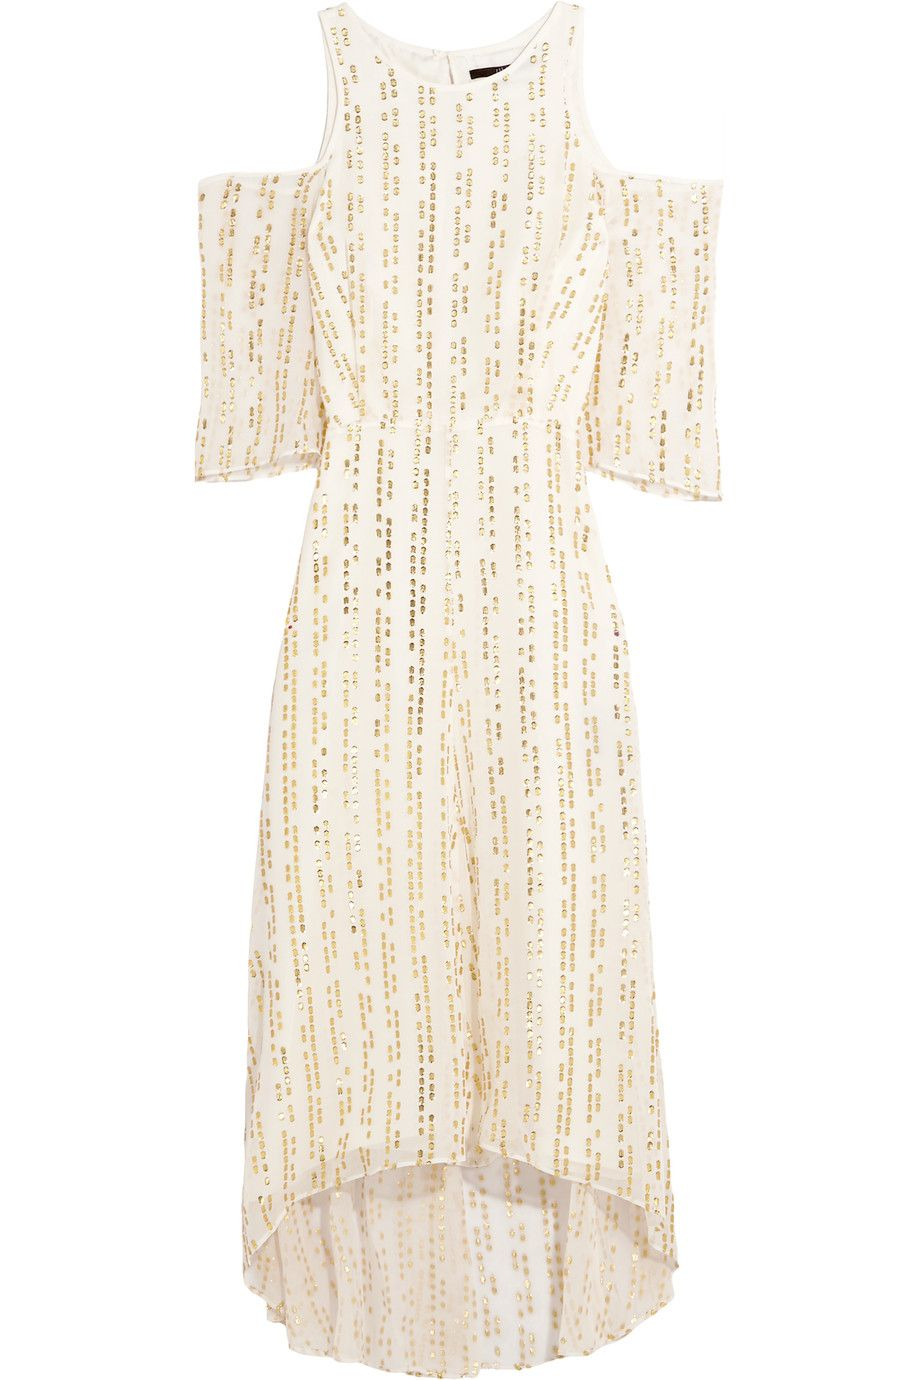 73da1c37f9 TIBI Bella Cutout Metallic Fil Coupé Silk-Blend Maxi Dress. #tibi #cloth # dress